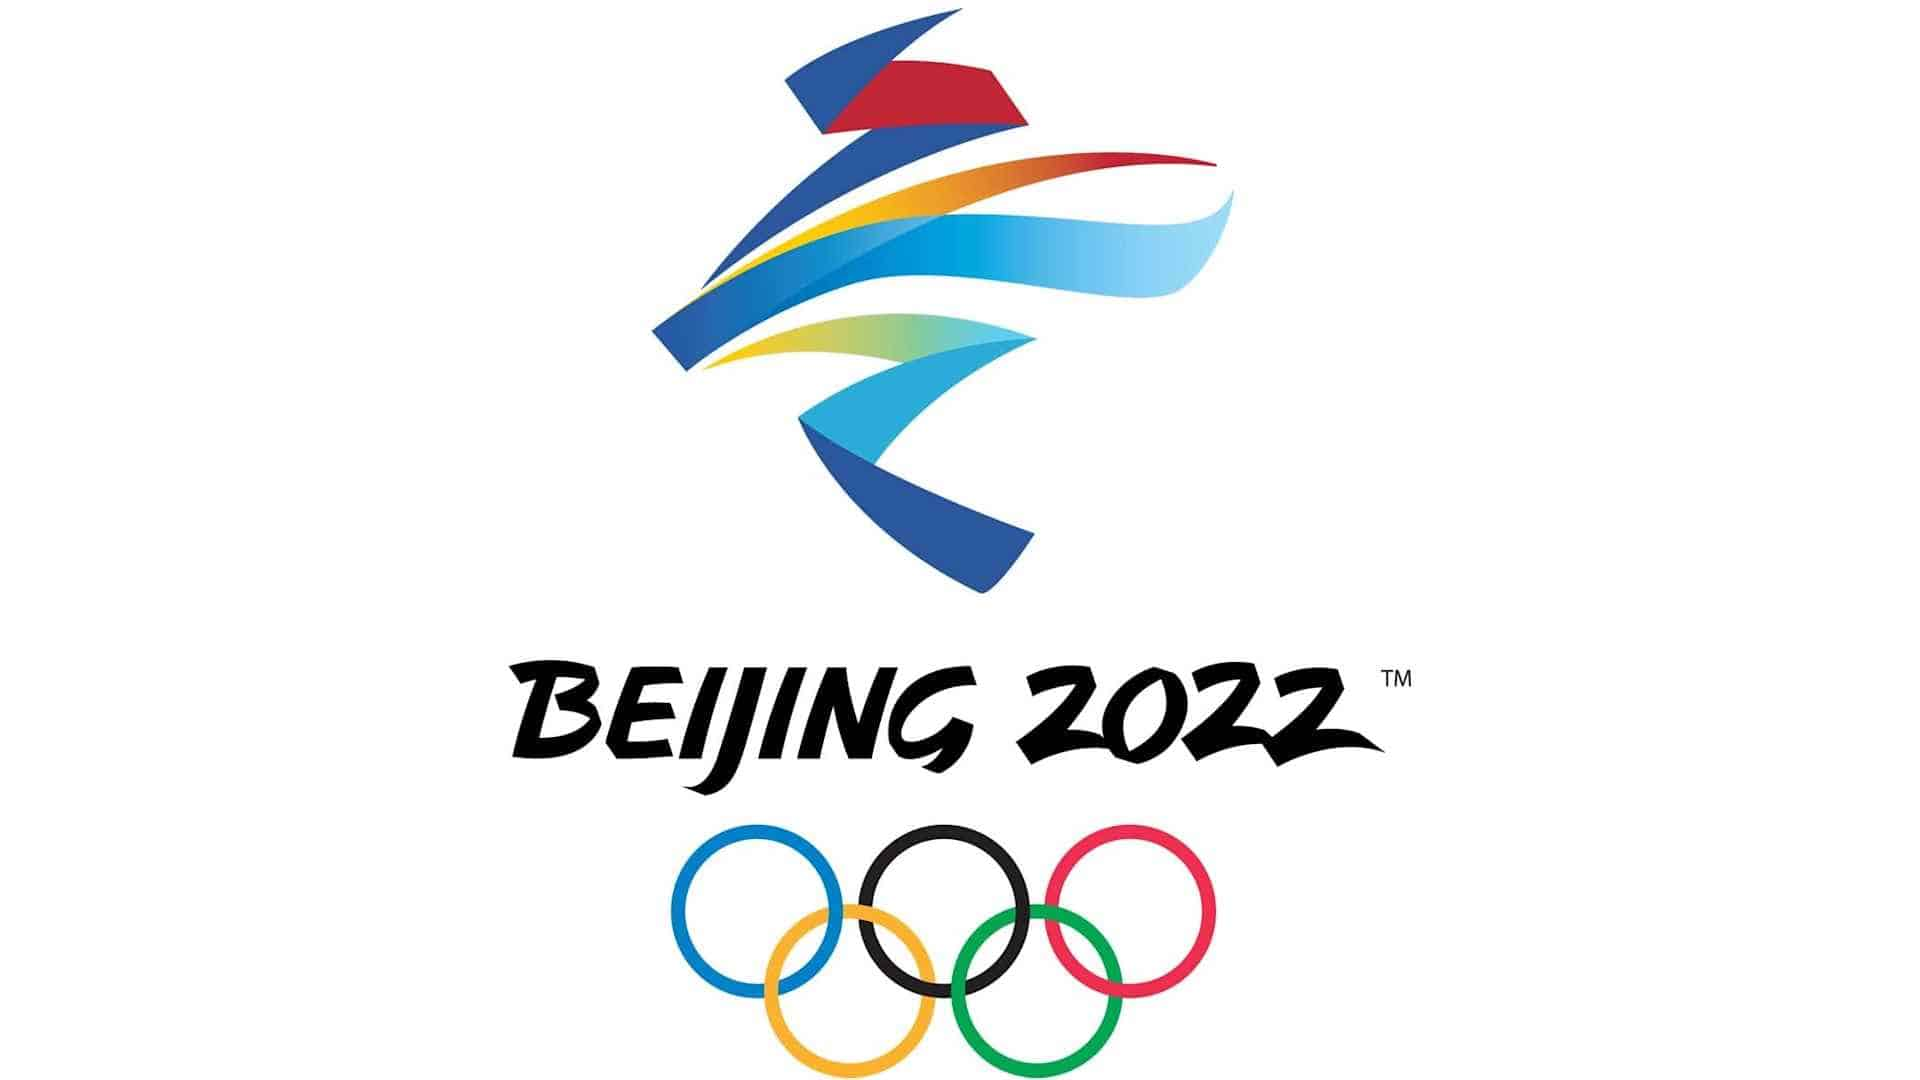 2022 Olympics odds for Winter Games in Beijing China